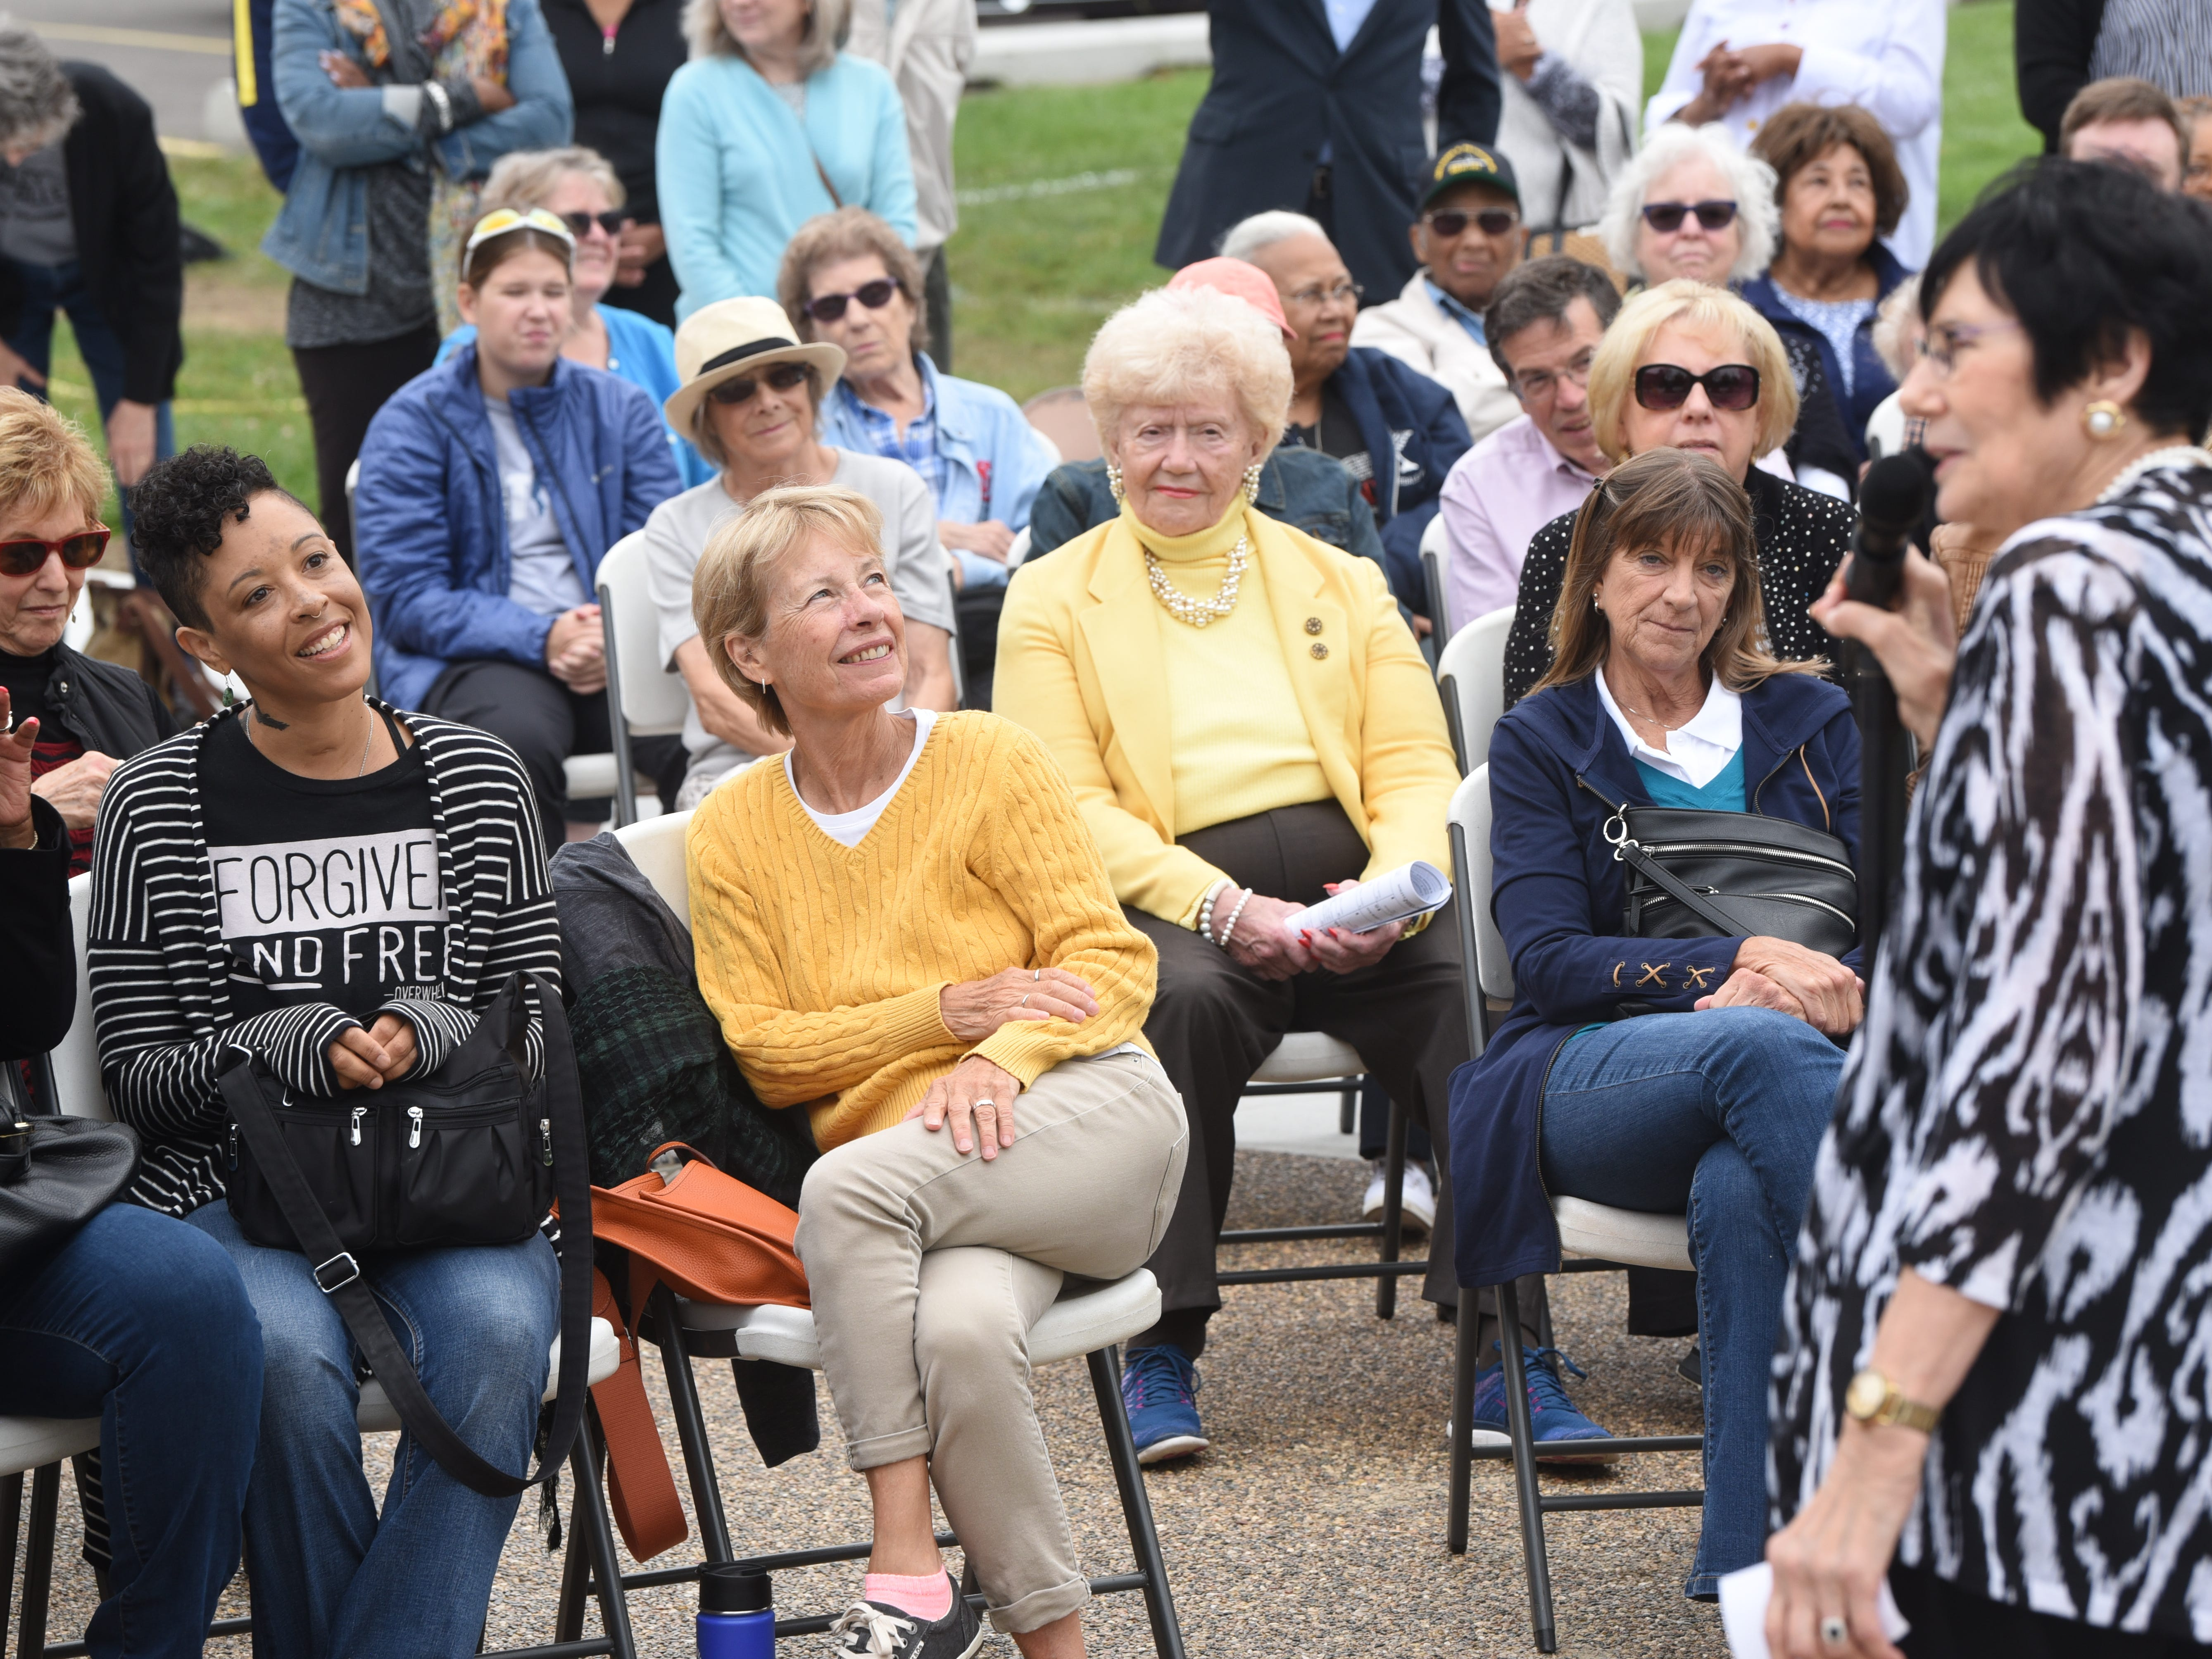 Lyndsay McGee, seated left, daughter of Charles McGee, listens to remarks by Marsha S. Bruhn, chair, The Legacy Project of North Rosedale Park.